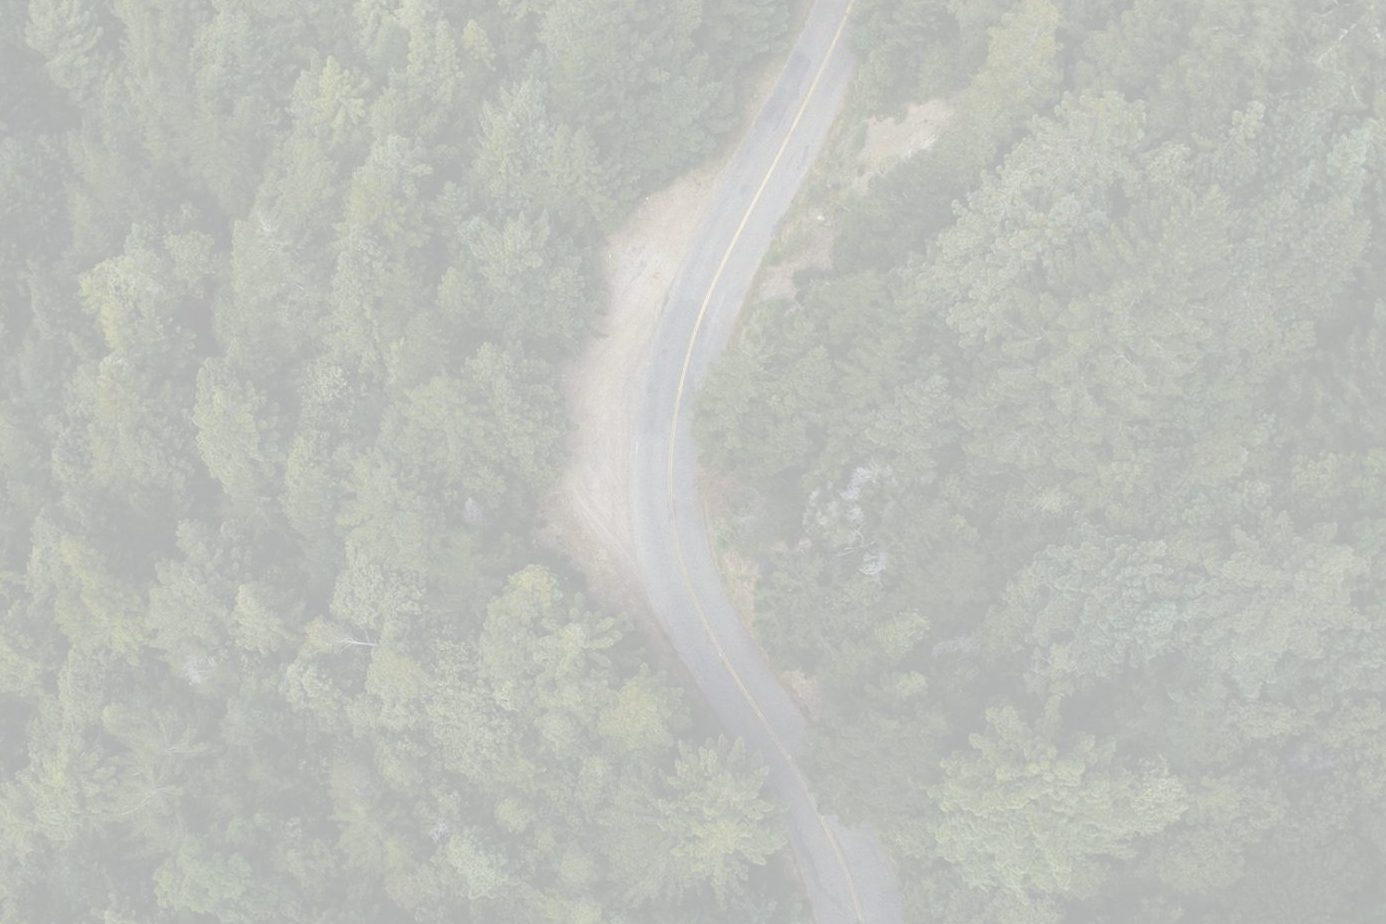 IT Roadmap - Why Your Organization Needs It